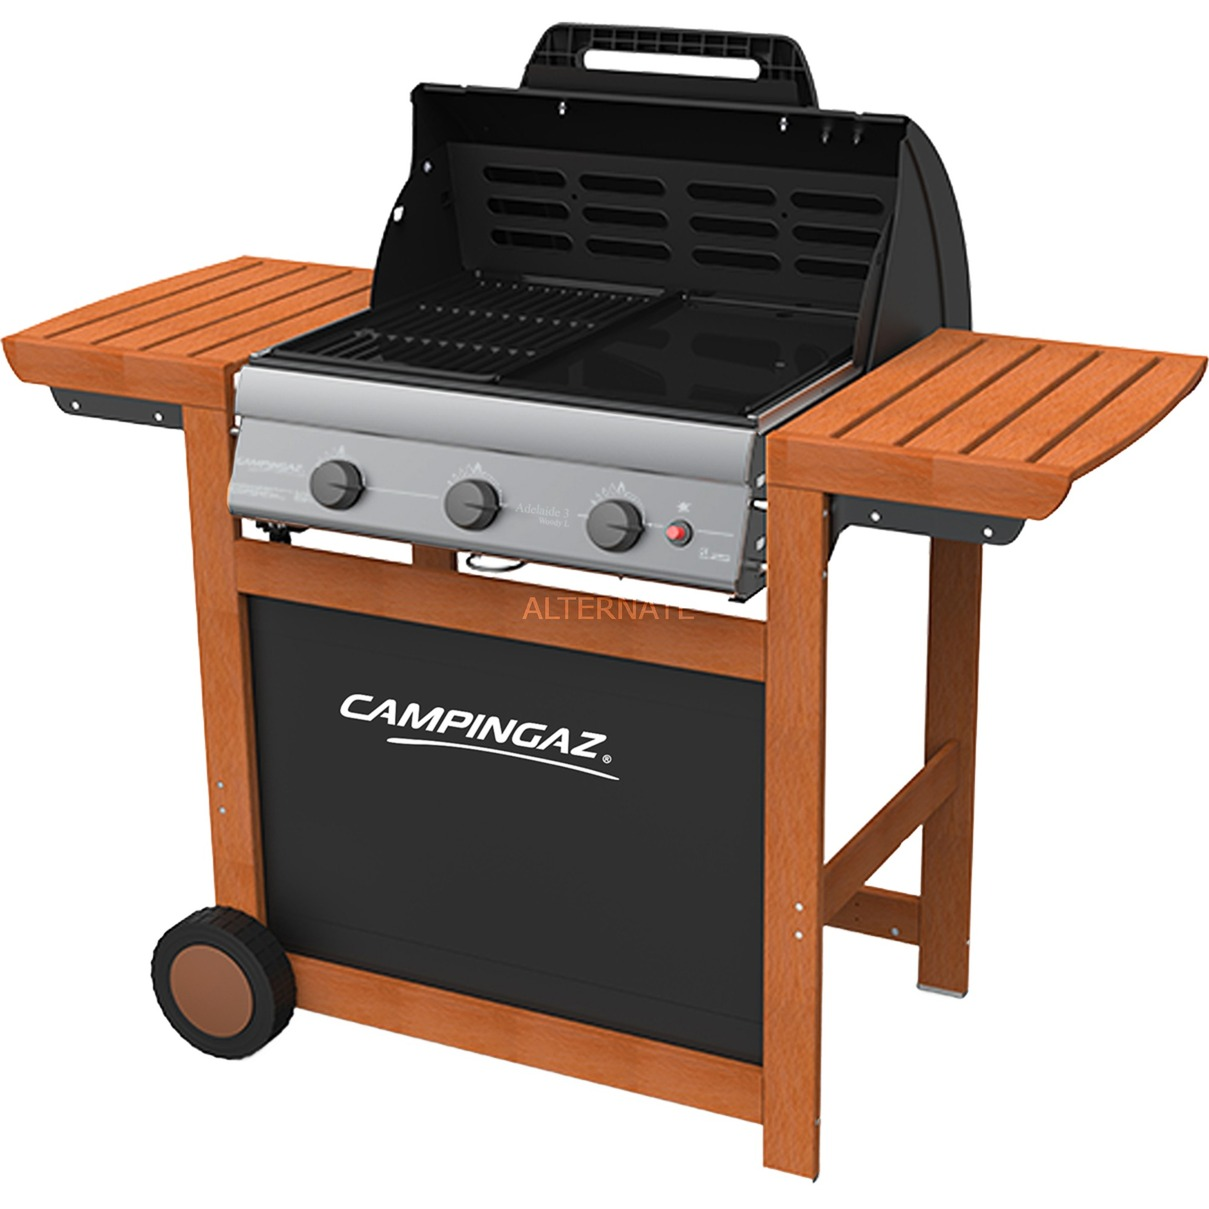 Gasgrill Adelaide 3 Woody L + Campingaz Premium Wender + Campingaz Bluetooth Grill-Thermometer